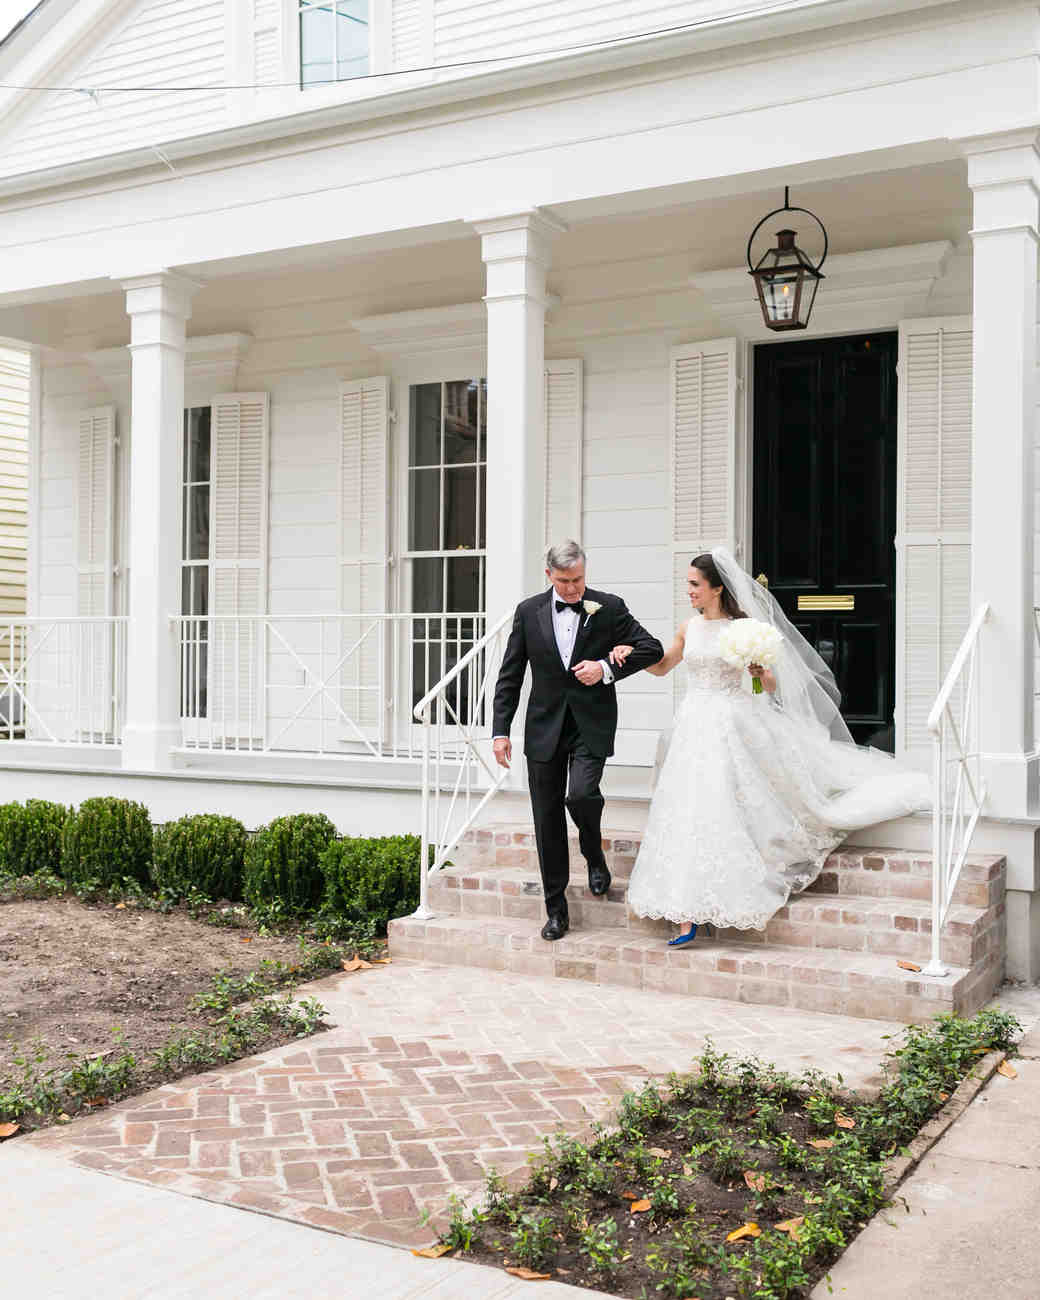 Father-Daughter Wedding Photos, Exiting House Together